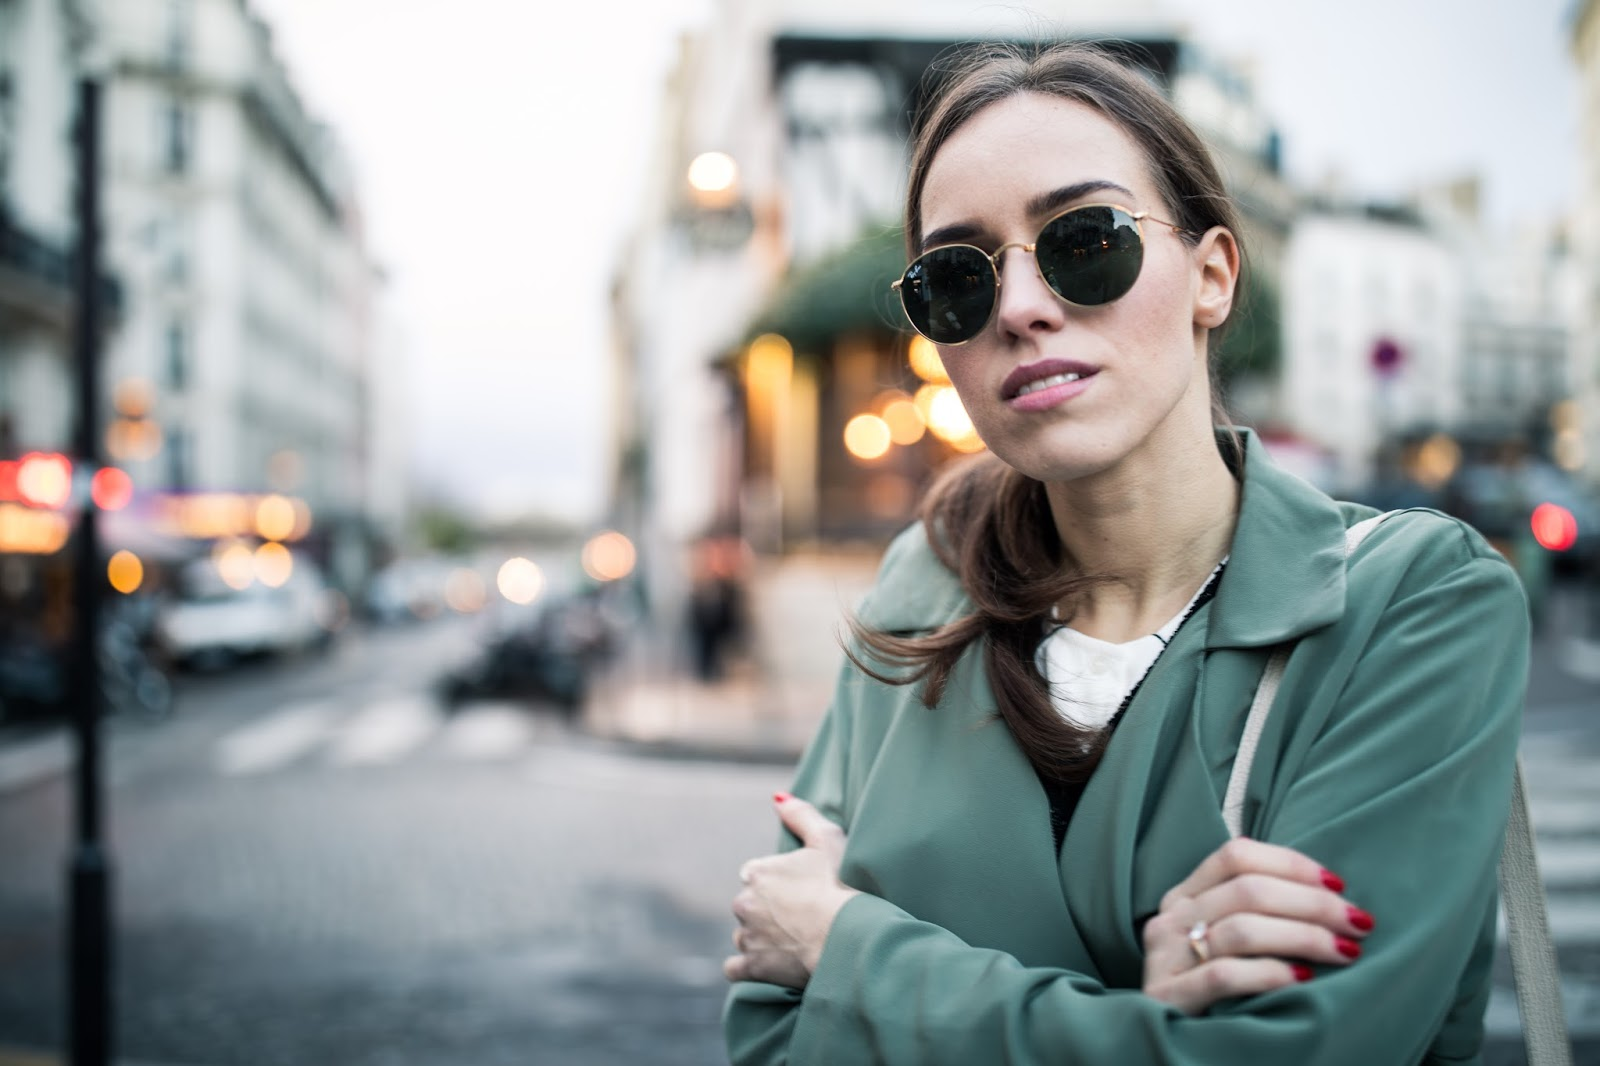 ray-ban round sunglasses outfit